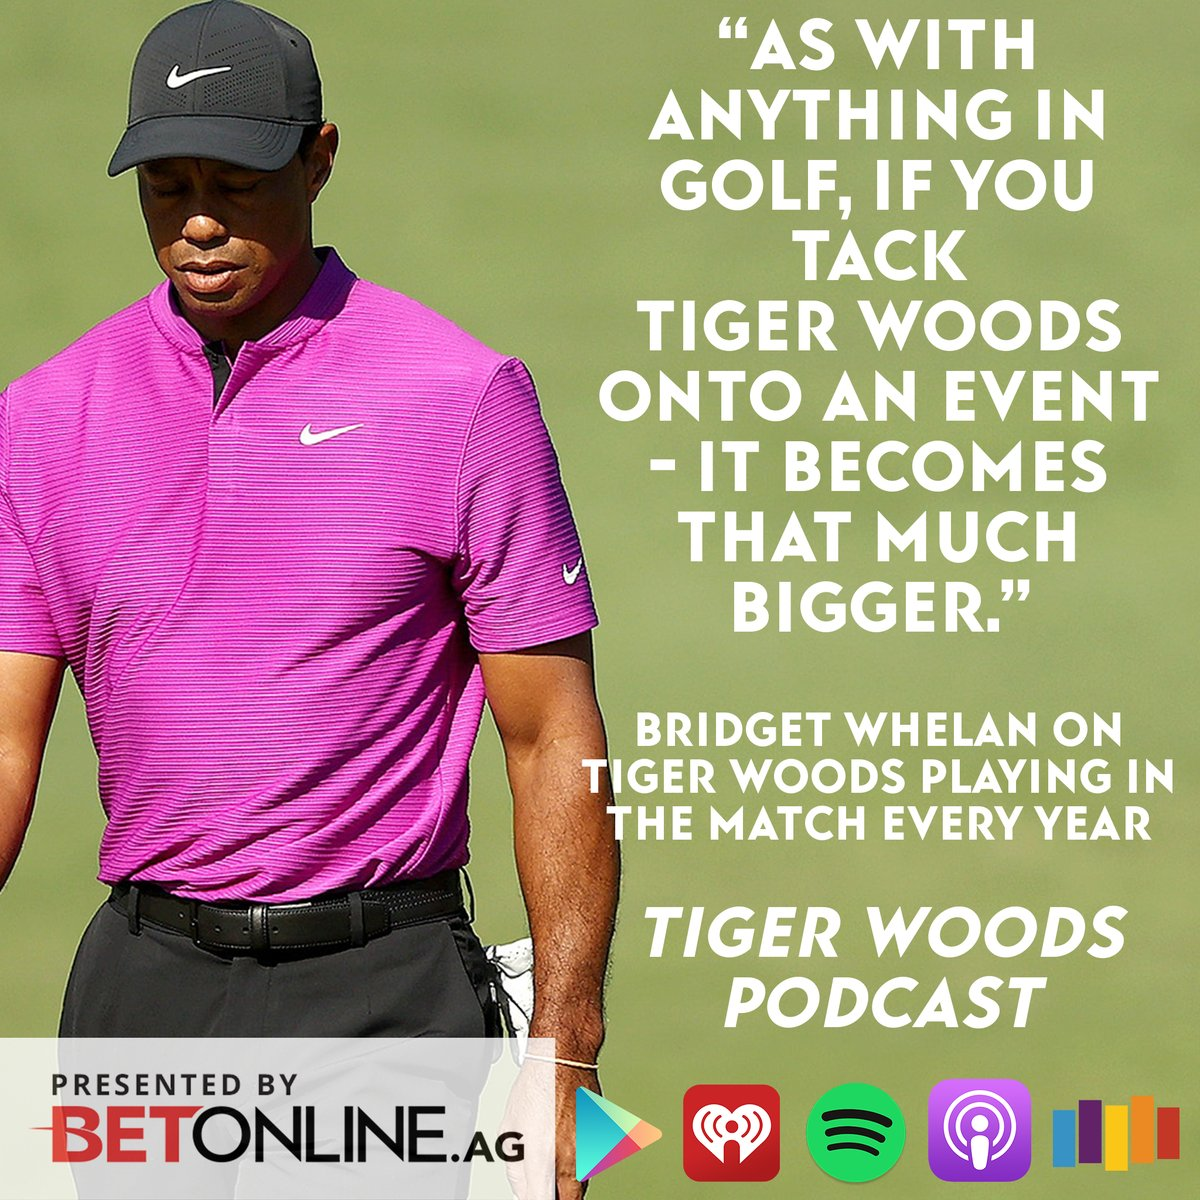 #TheMatch3 was fun, but does every Match need Tiger Woods? @bridgetkwhelan and @MrRogers99 say YES.  Join them on The Tiger Woods podcast for talk on that + an event on Tiger's schedule this month! Presented by  @betonline_ag: